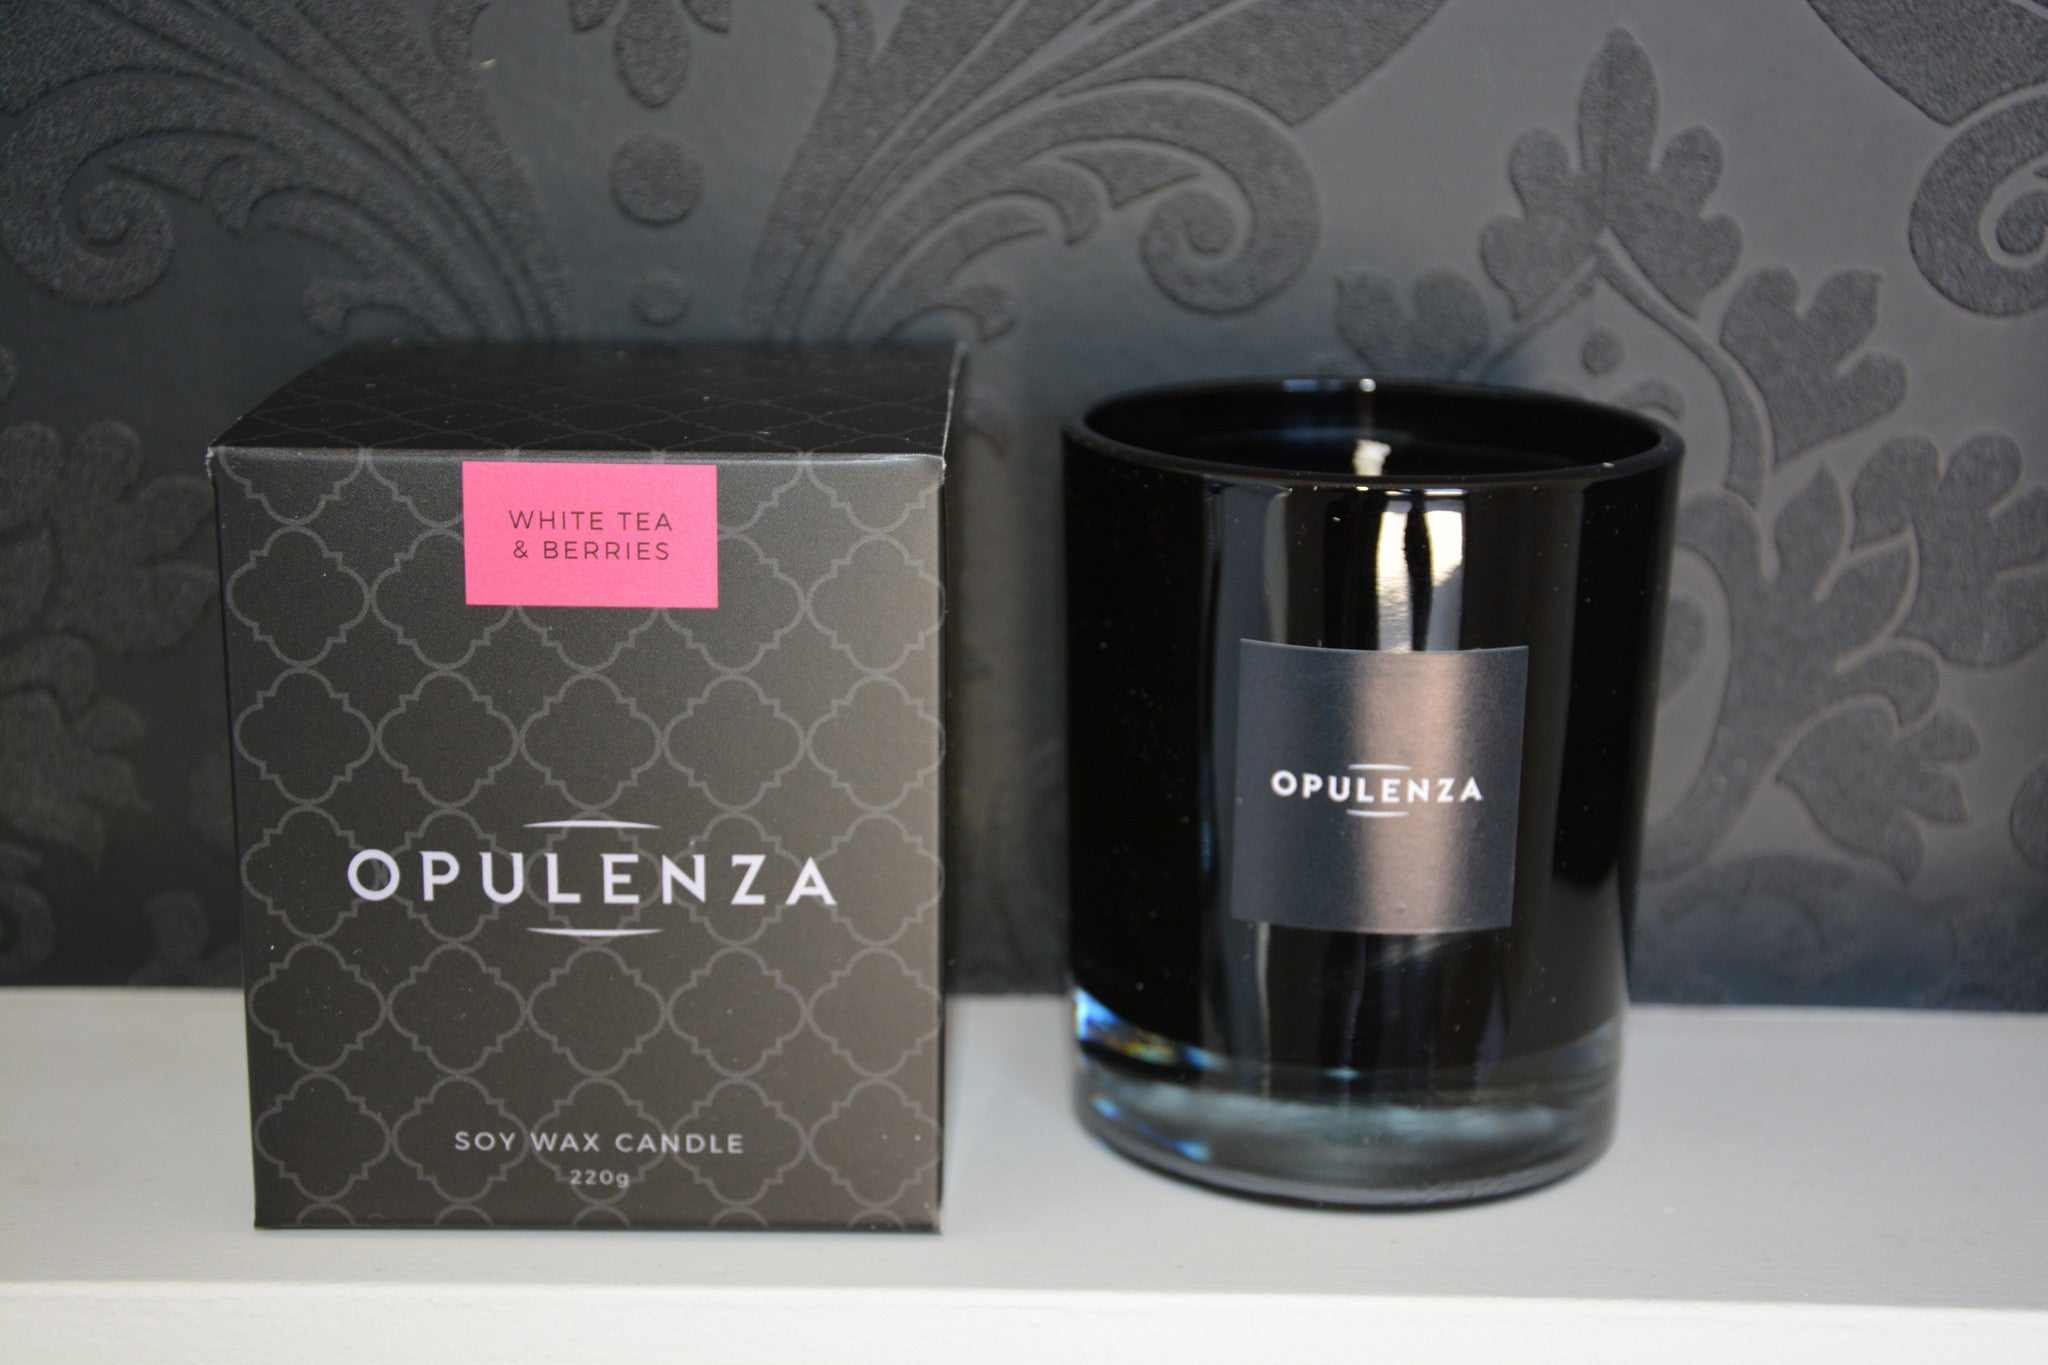 White Tea and Berries scented candle - Opulenza Fragrances